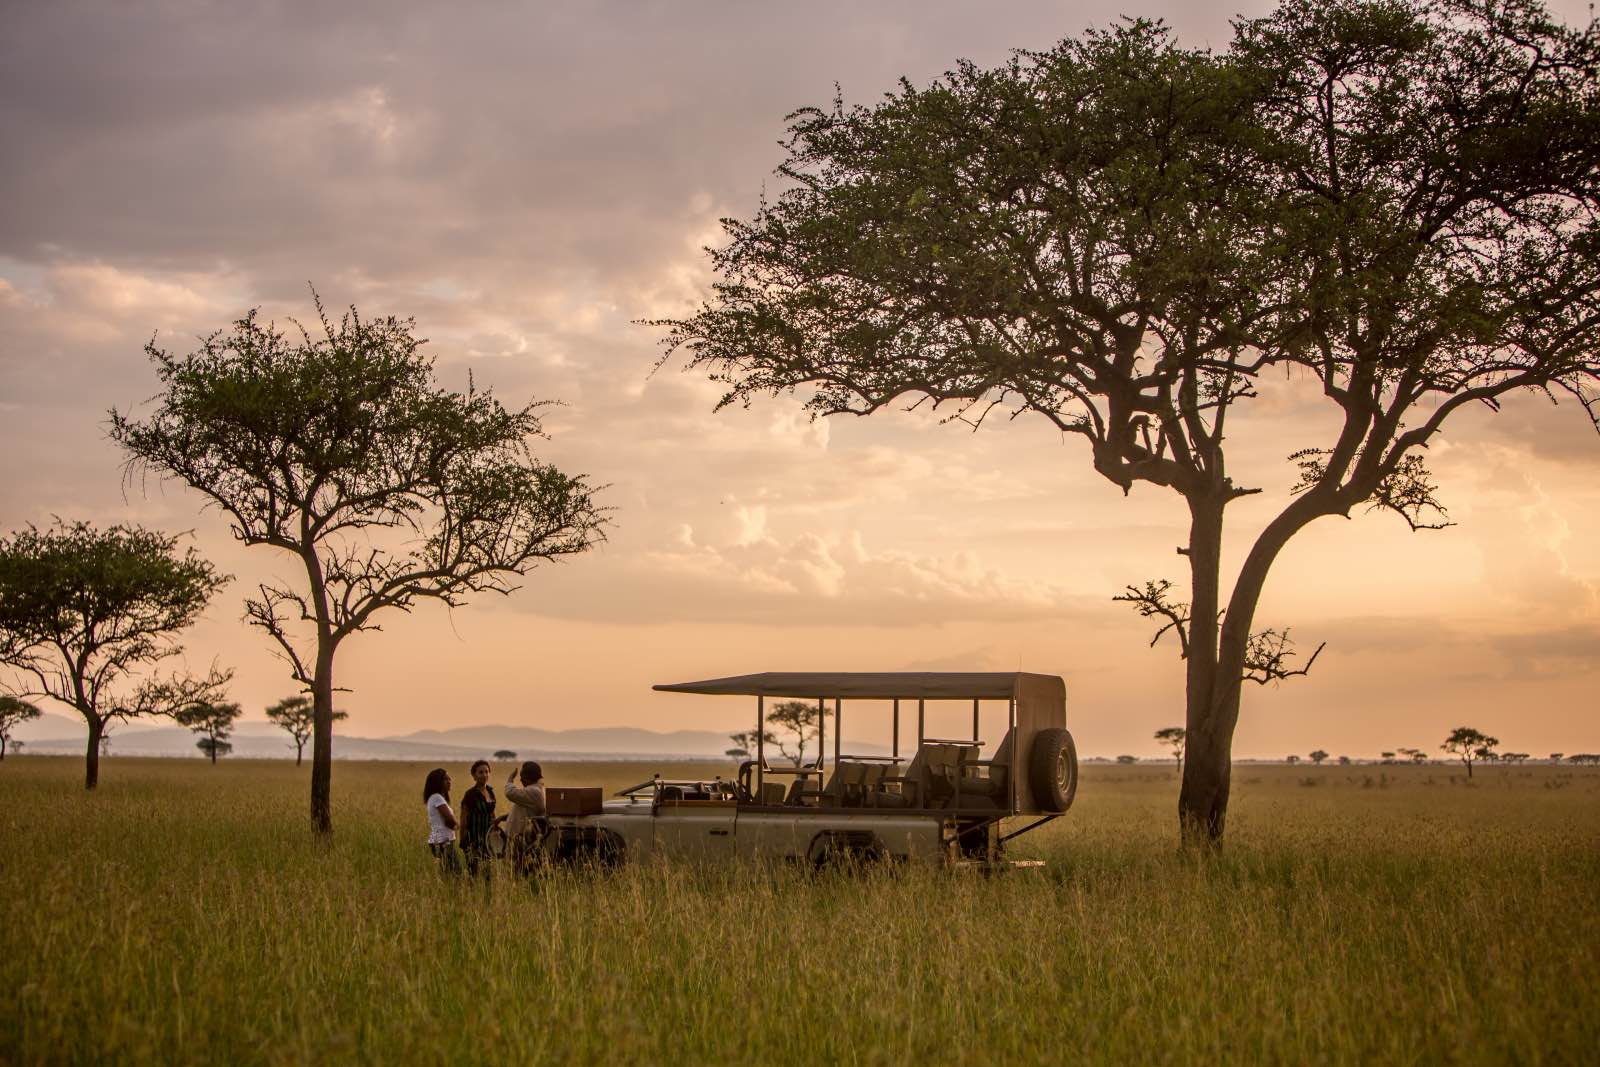 Exclusive access to the 350 000 acre conservancy for guests of Singita